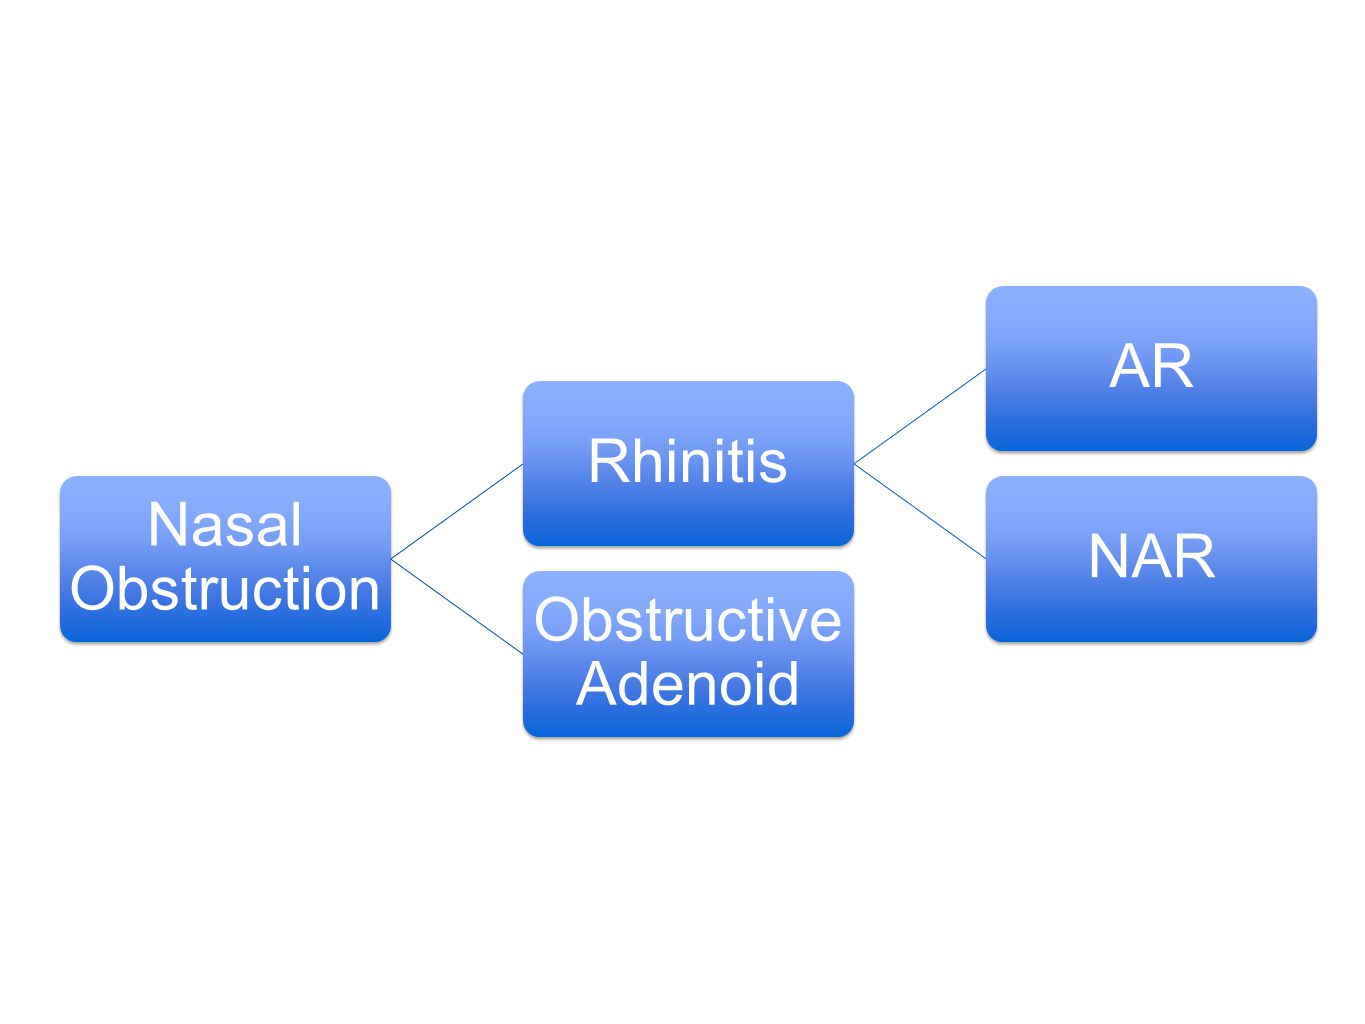 Nasal Obstruction Rhinitis AR NAR Obstructive Adenoid